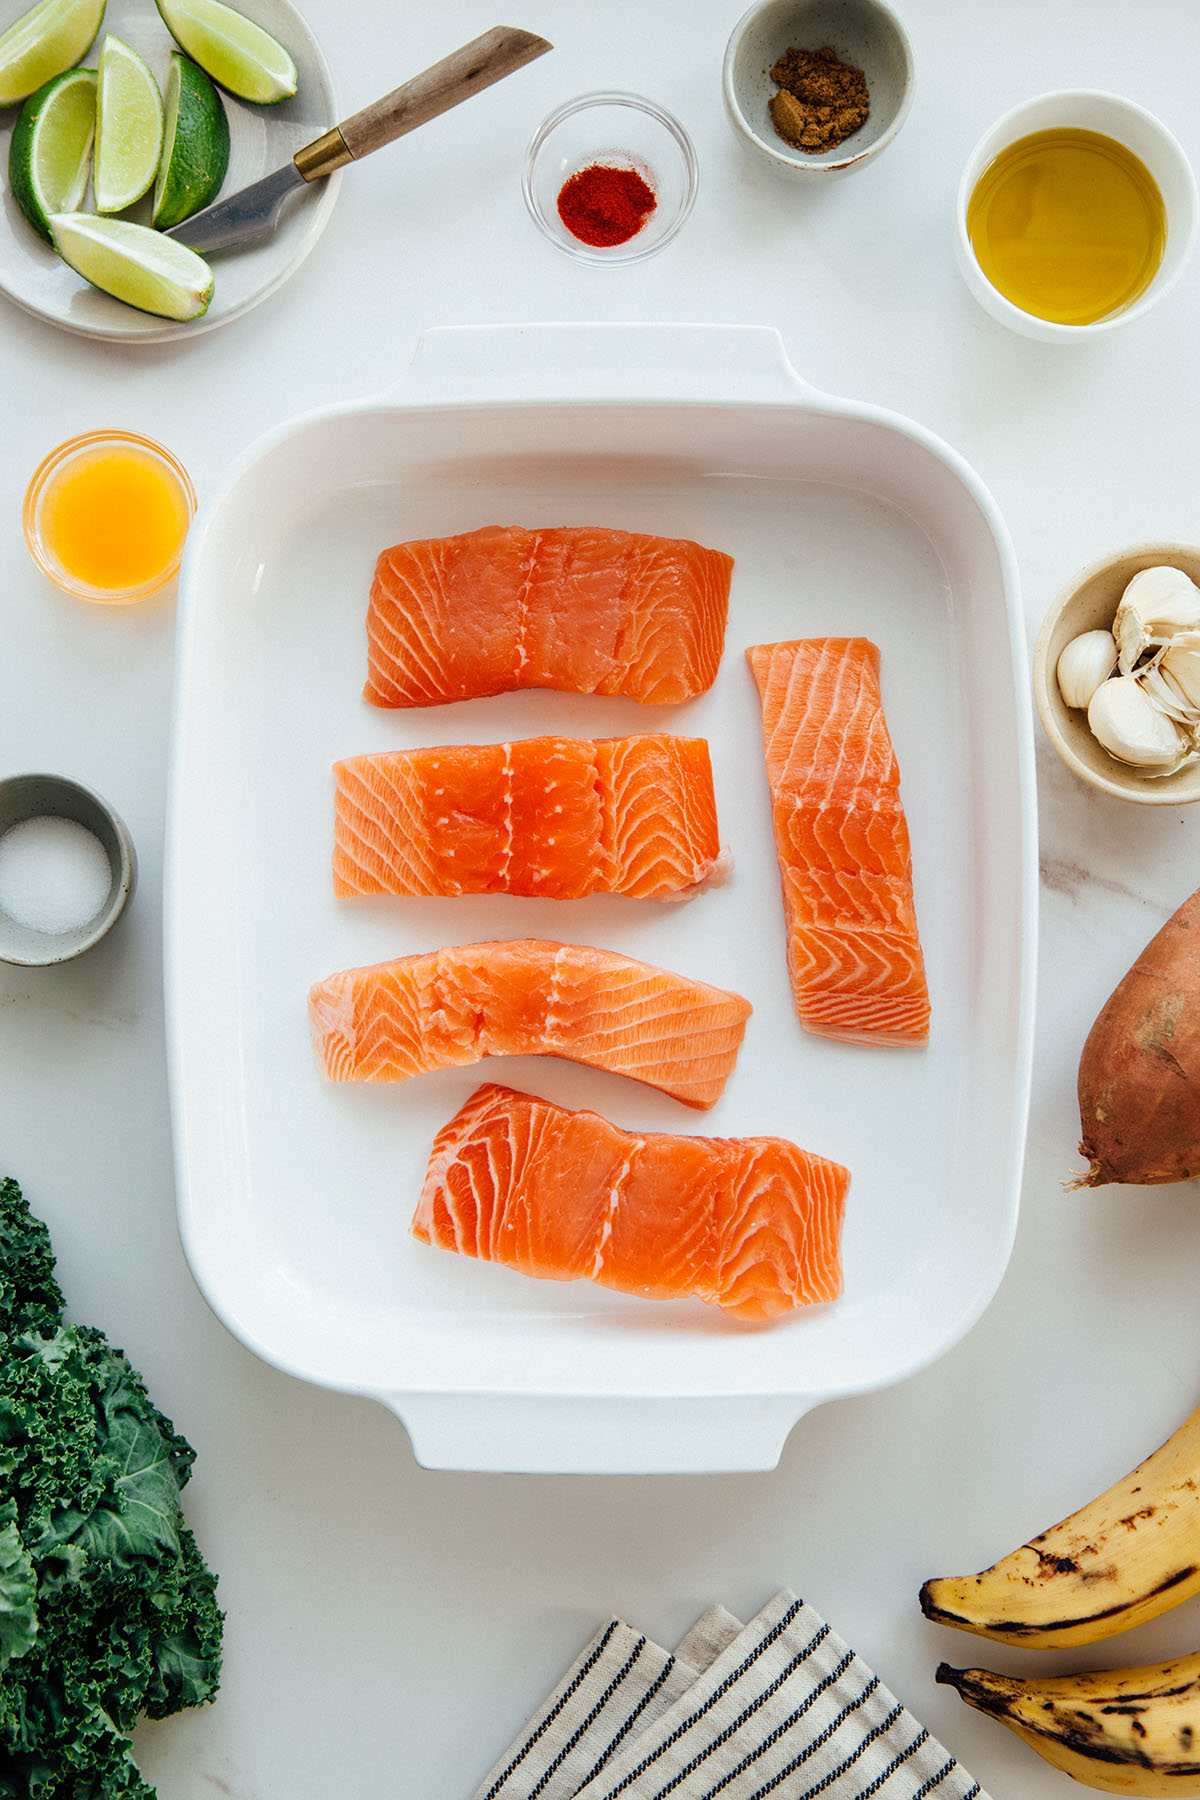 A dish of fresh salmon filets surrounded by ingredients.